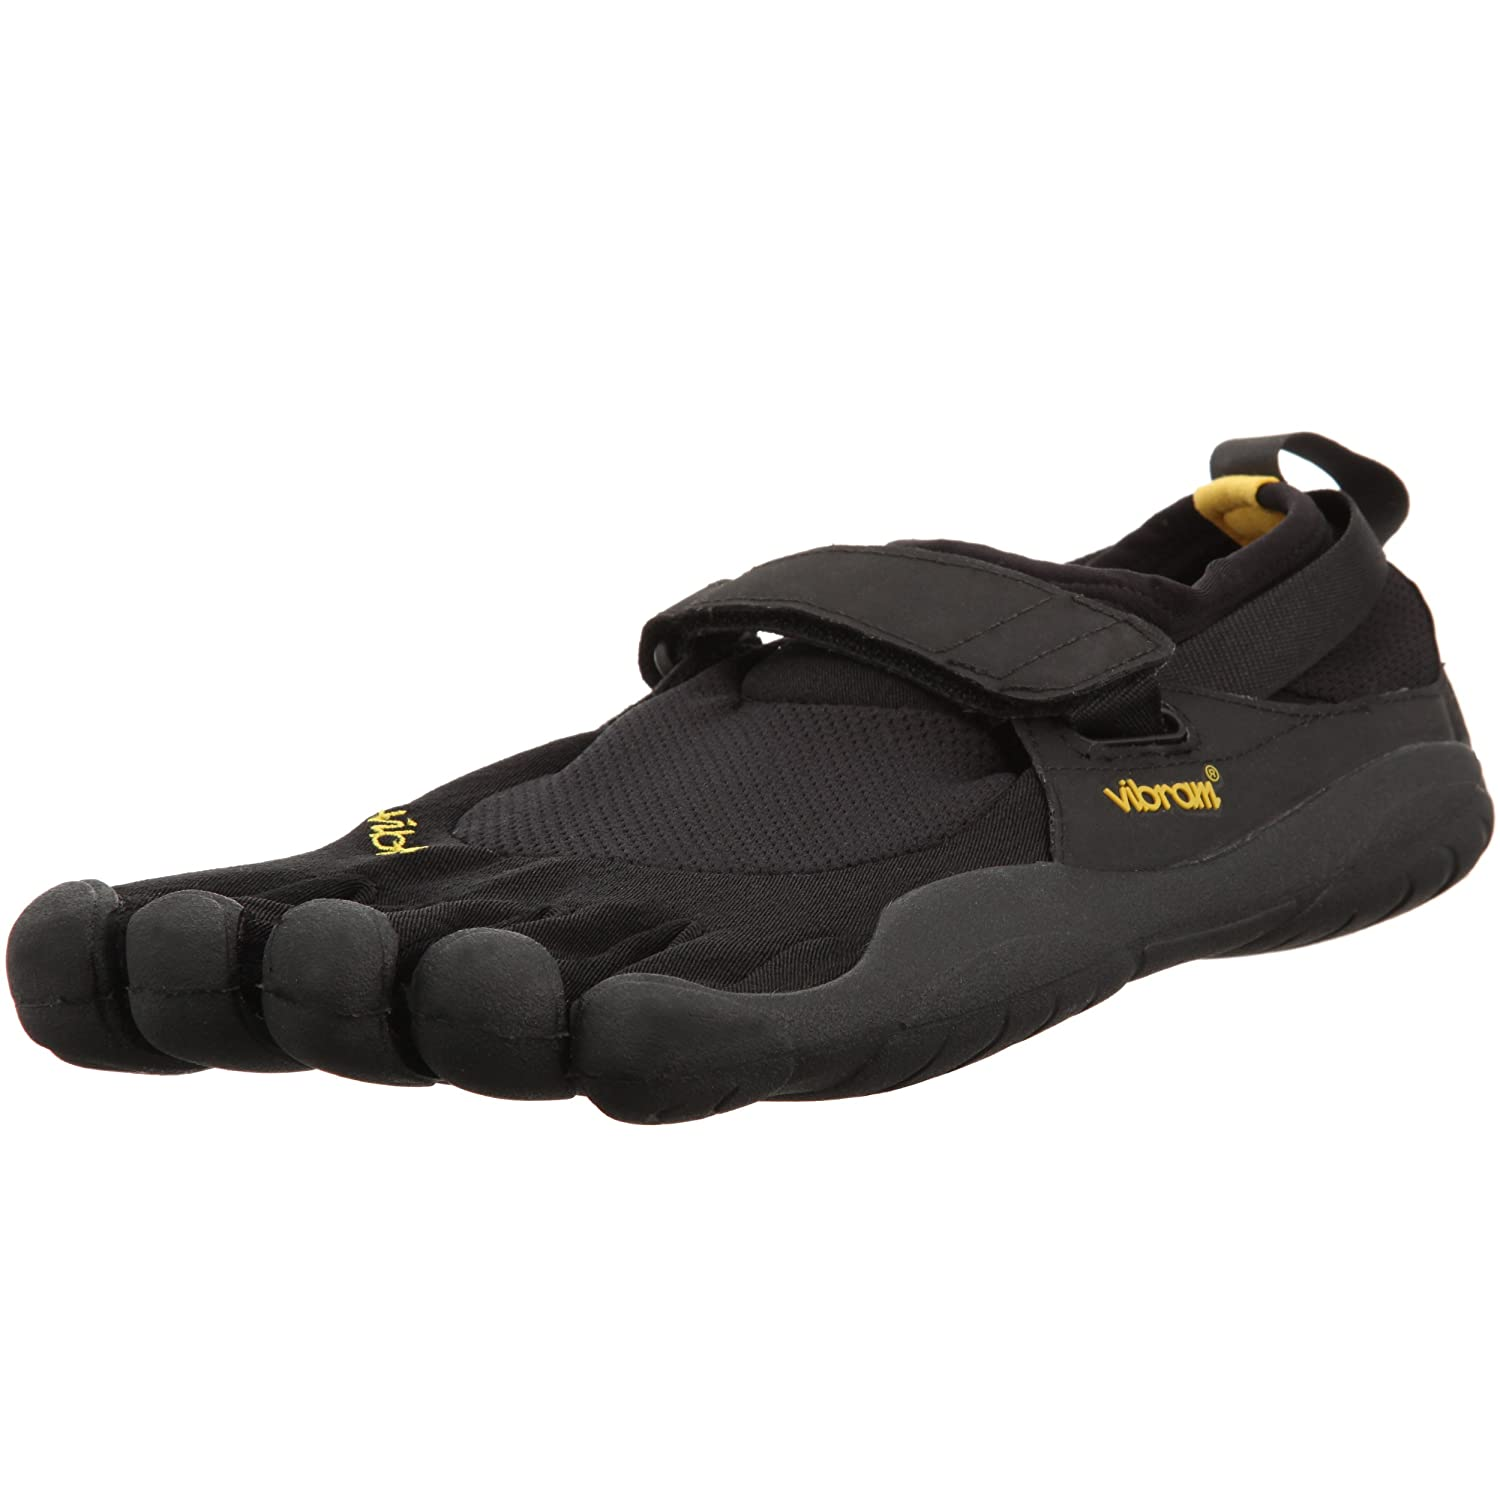 vibram five fingers problems in america